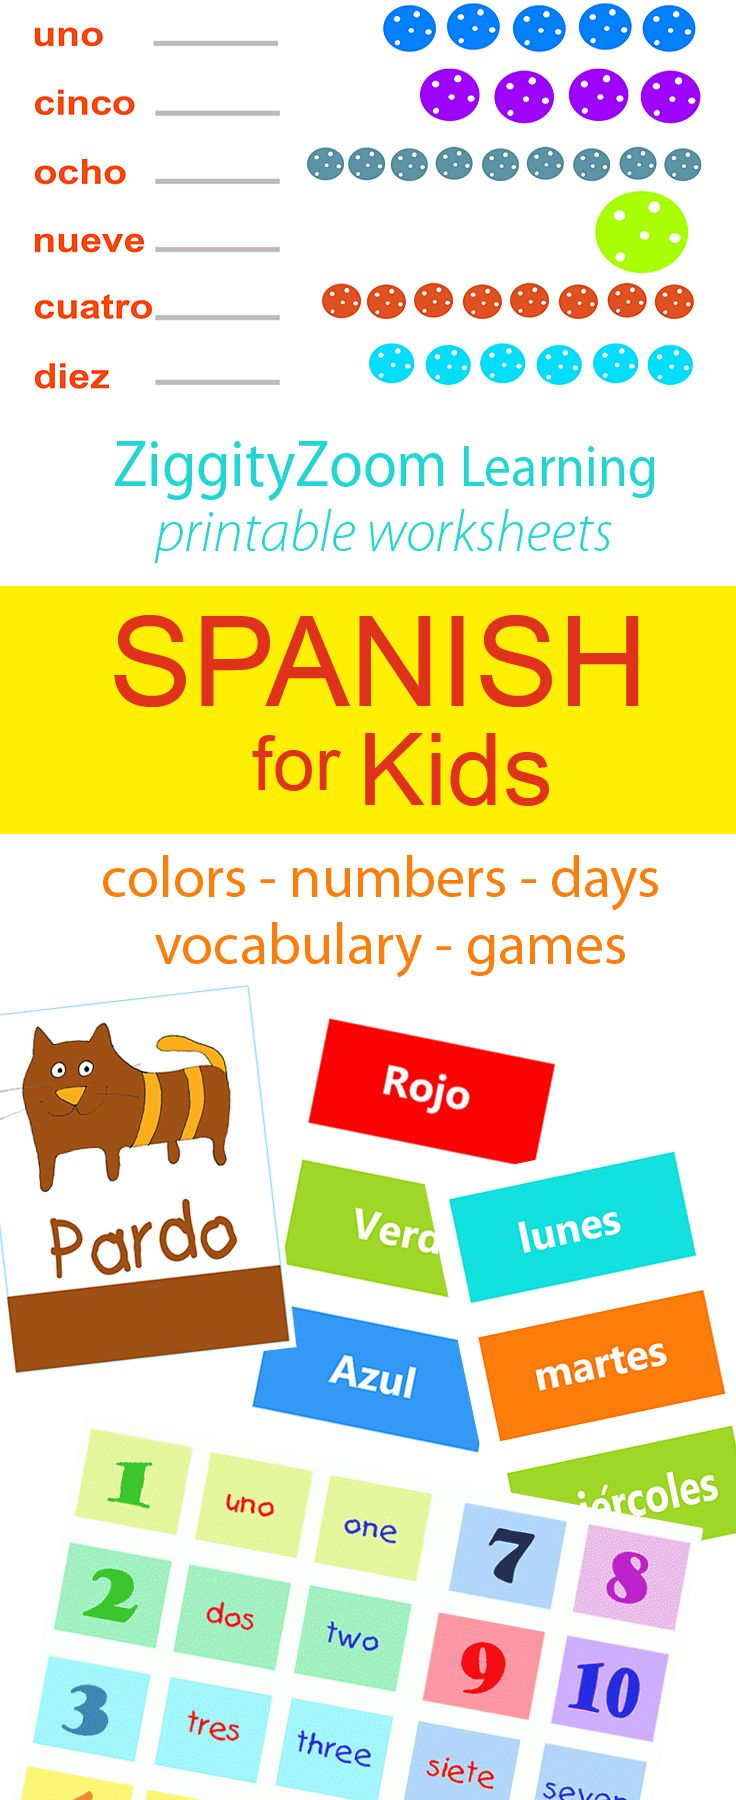 Worksheets Learning Spanish Worksheets spanish english number match worksheets learn free printable for kids lots of beginner printables learning or english